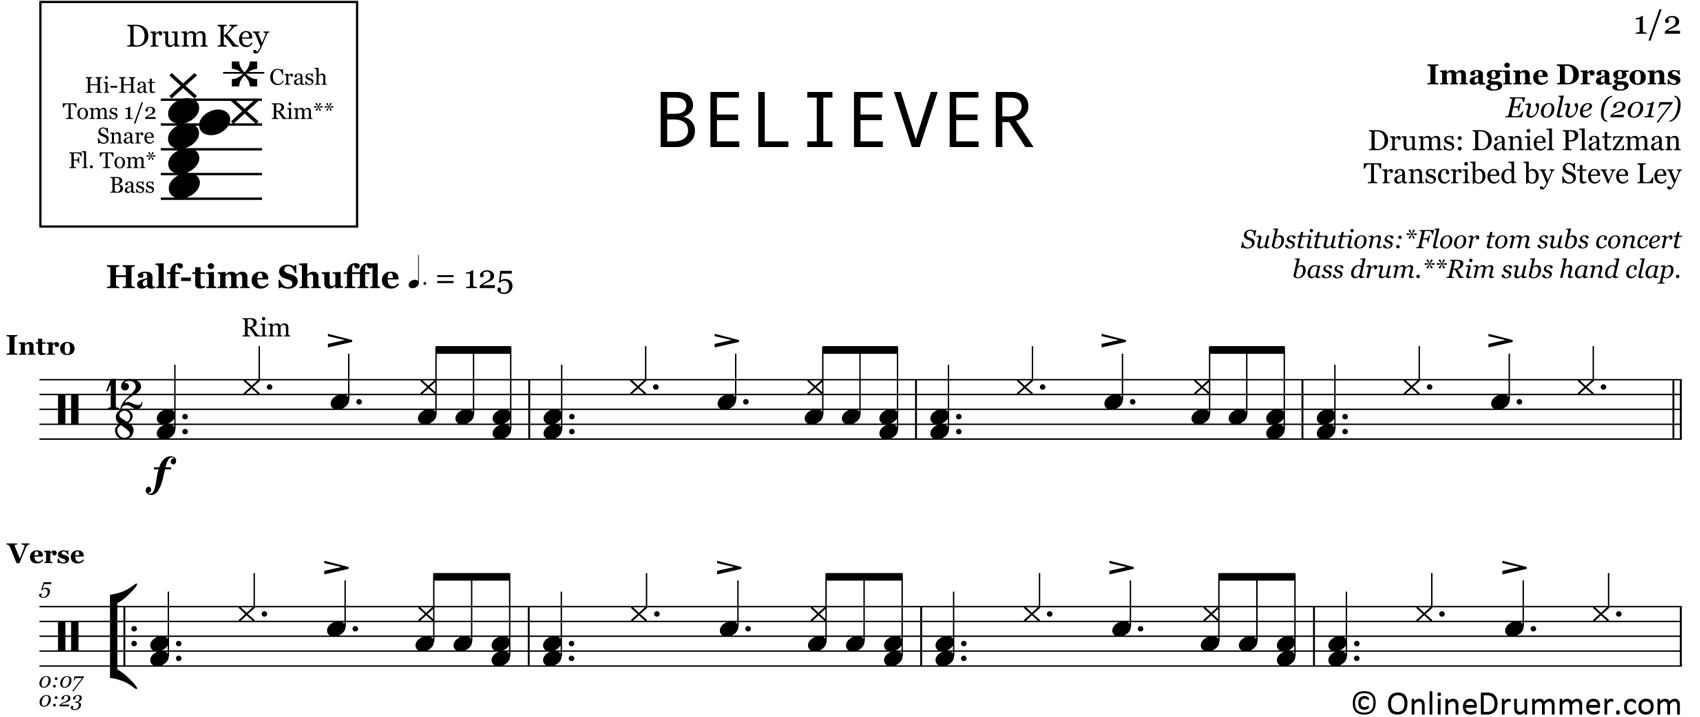 Believer - Imagine Dragons - Drum Sheet Music